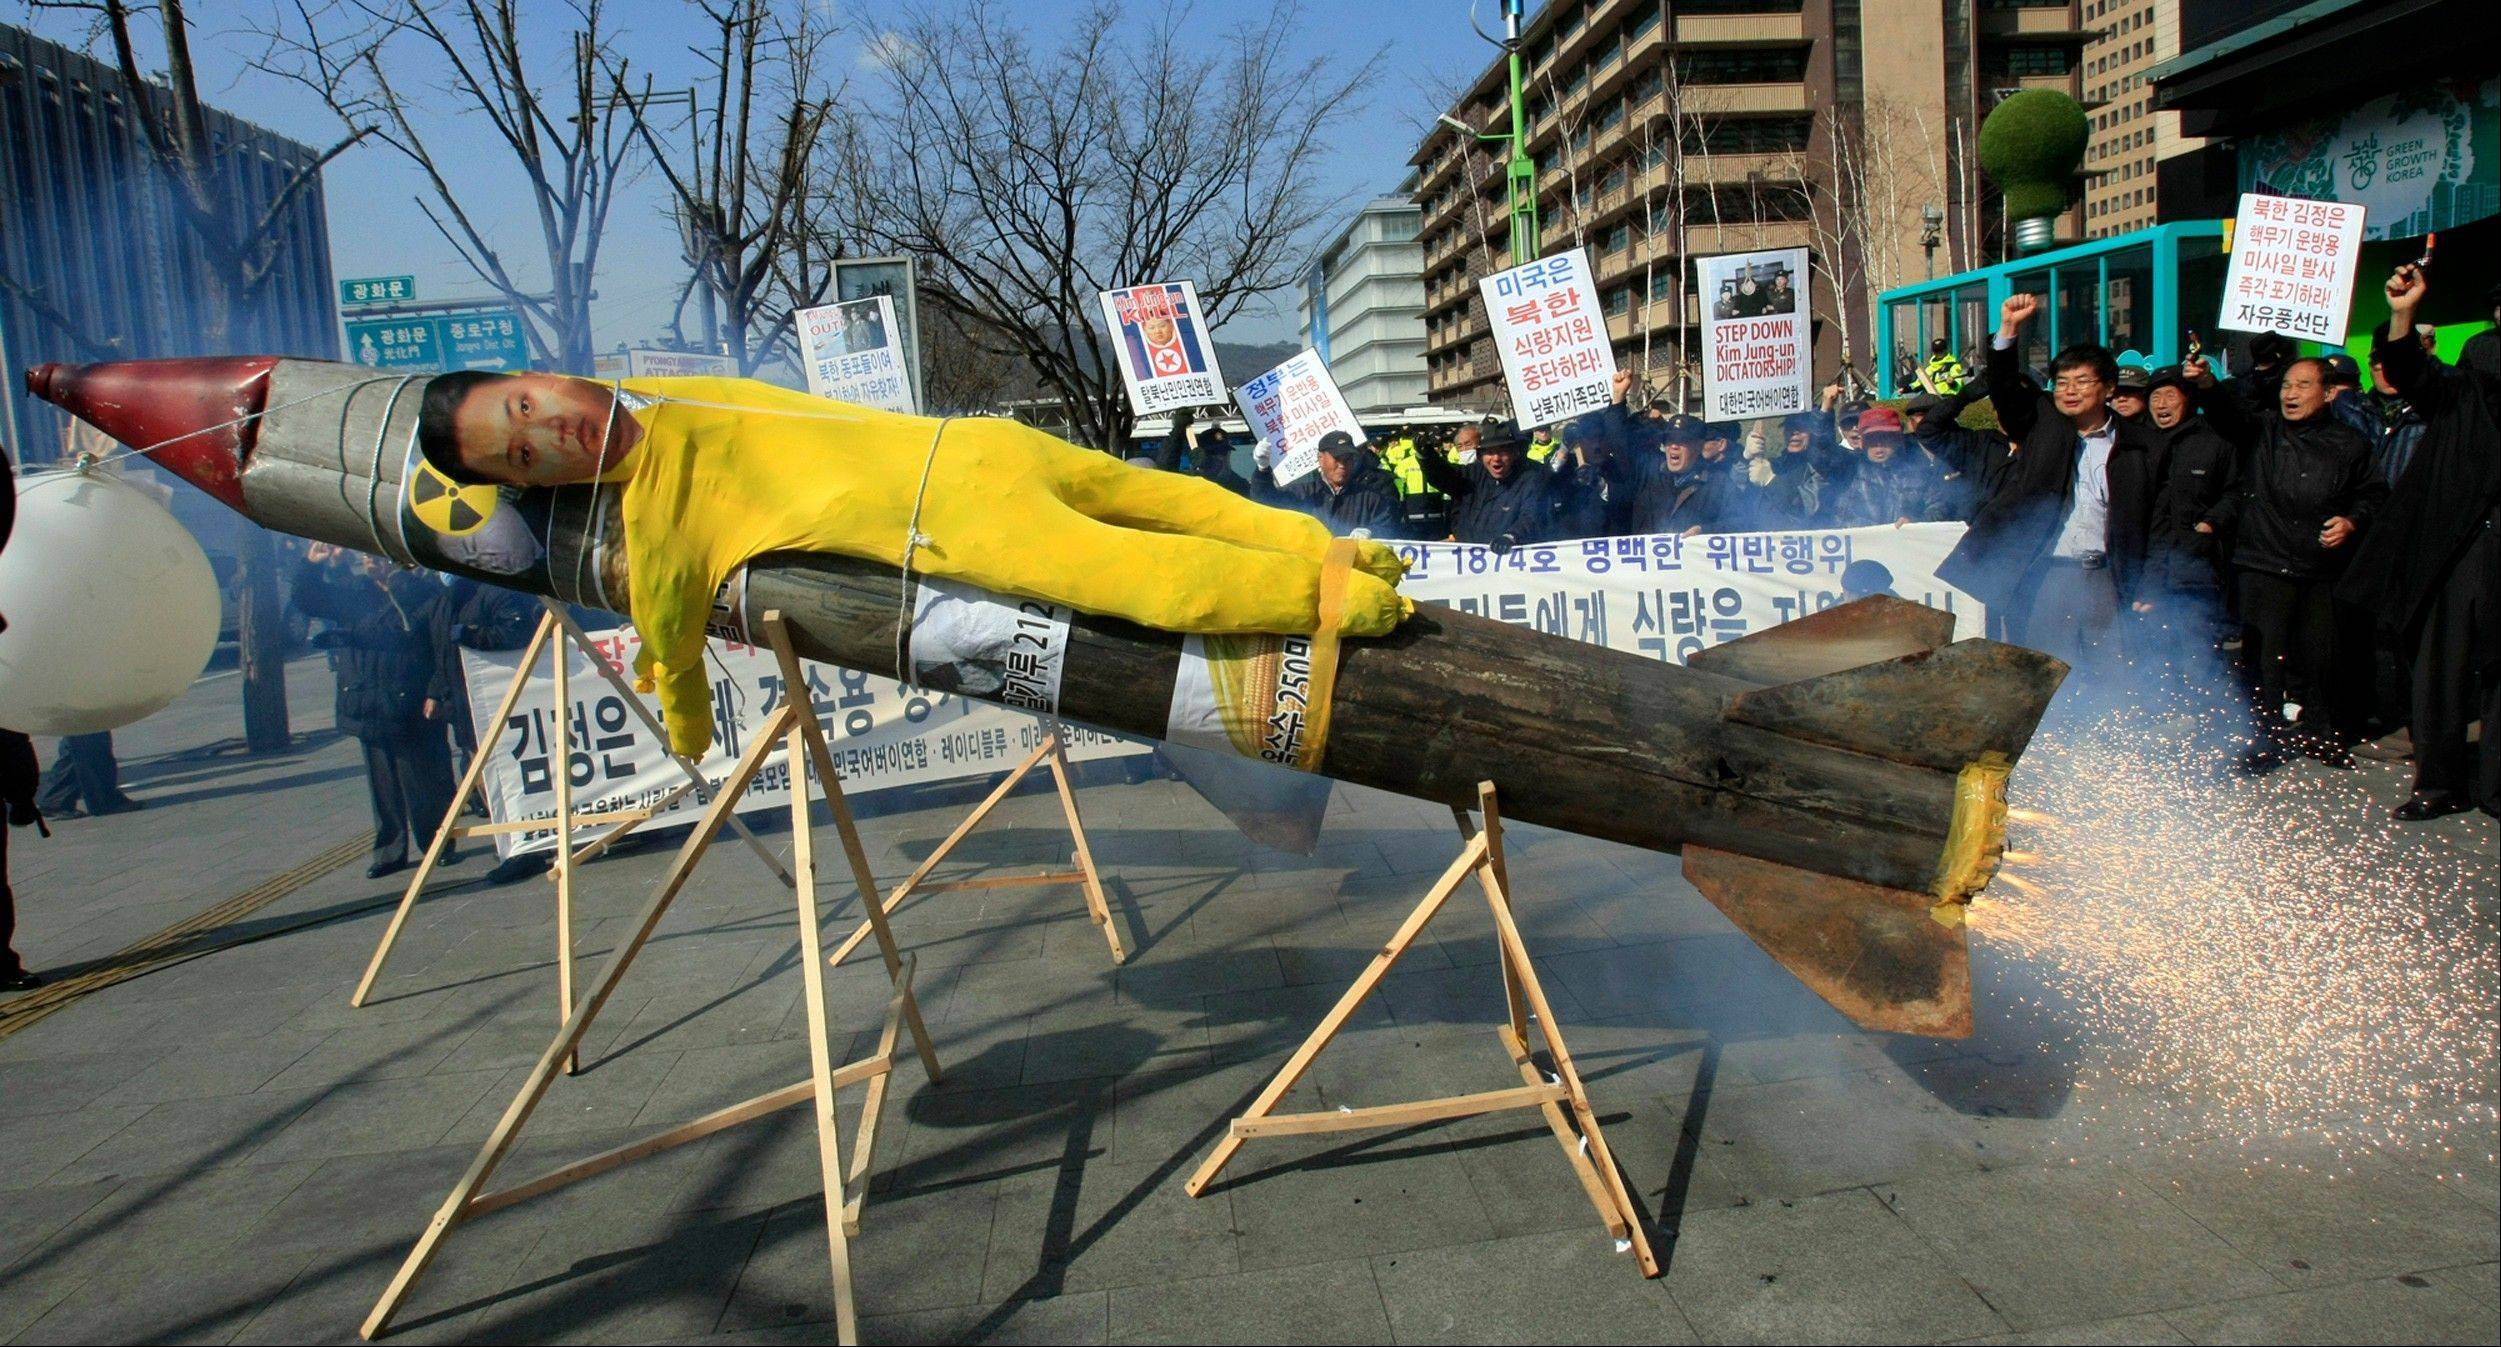 An effigy of North Korean leader Kim Jong Un is put on a mock North Korean missile during an anti-North Korea rally denouncing North's plan to launch a long-range rocket in Seoul, Tuesday, March 20, 2012. North Korea vowed Sunday to go ahead with plans to launch a long-range rocket, rejecting criticism in the West that it would scuttle recent diplomacy.